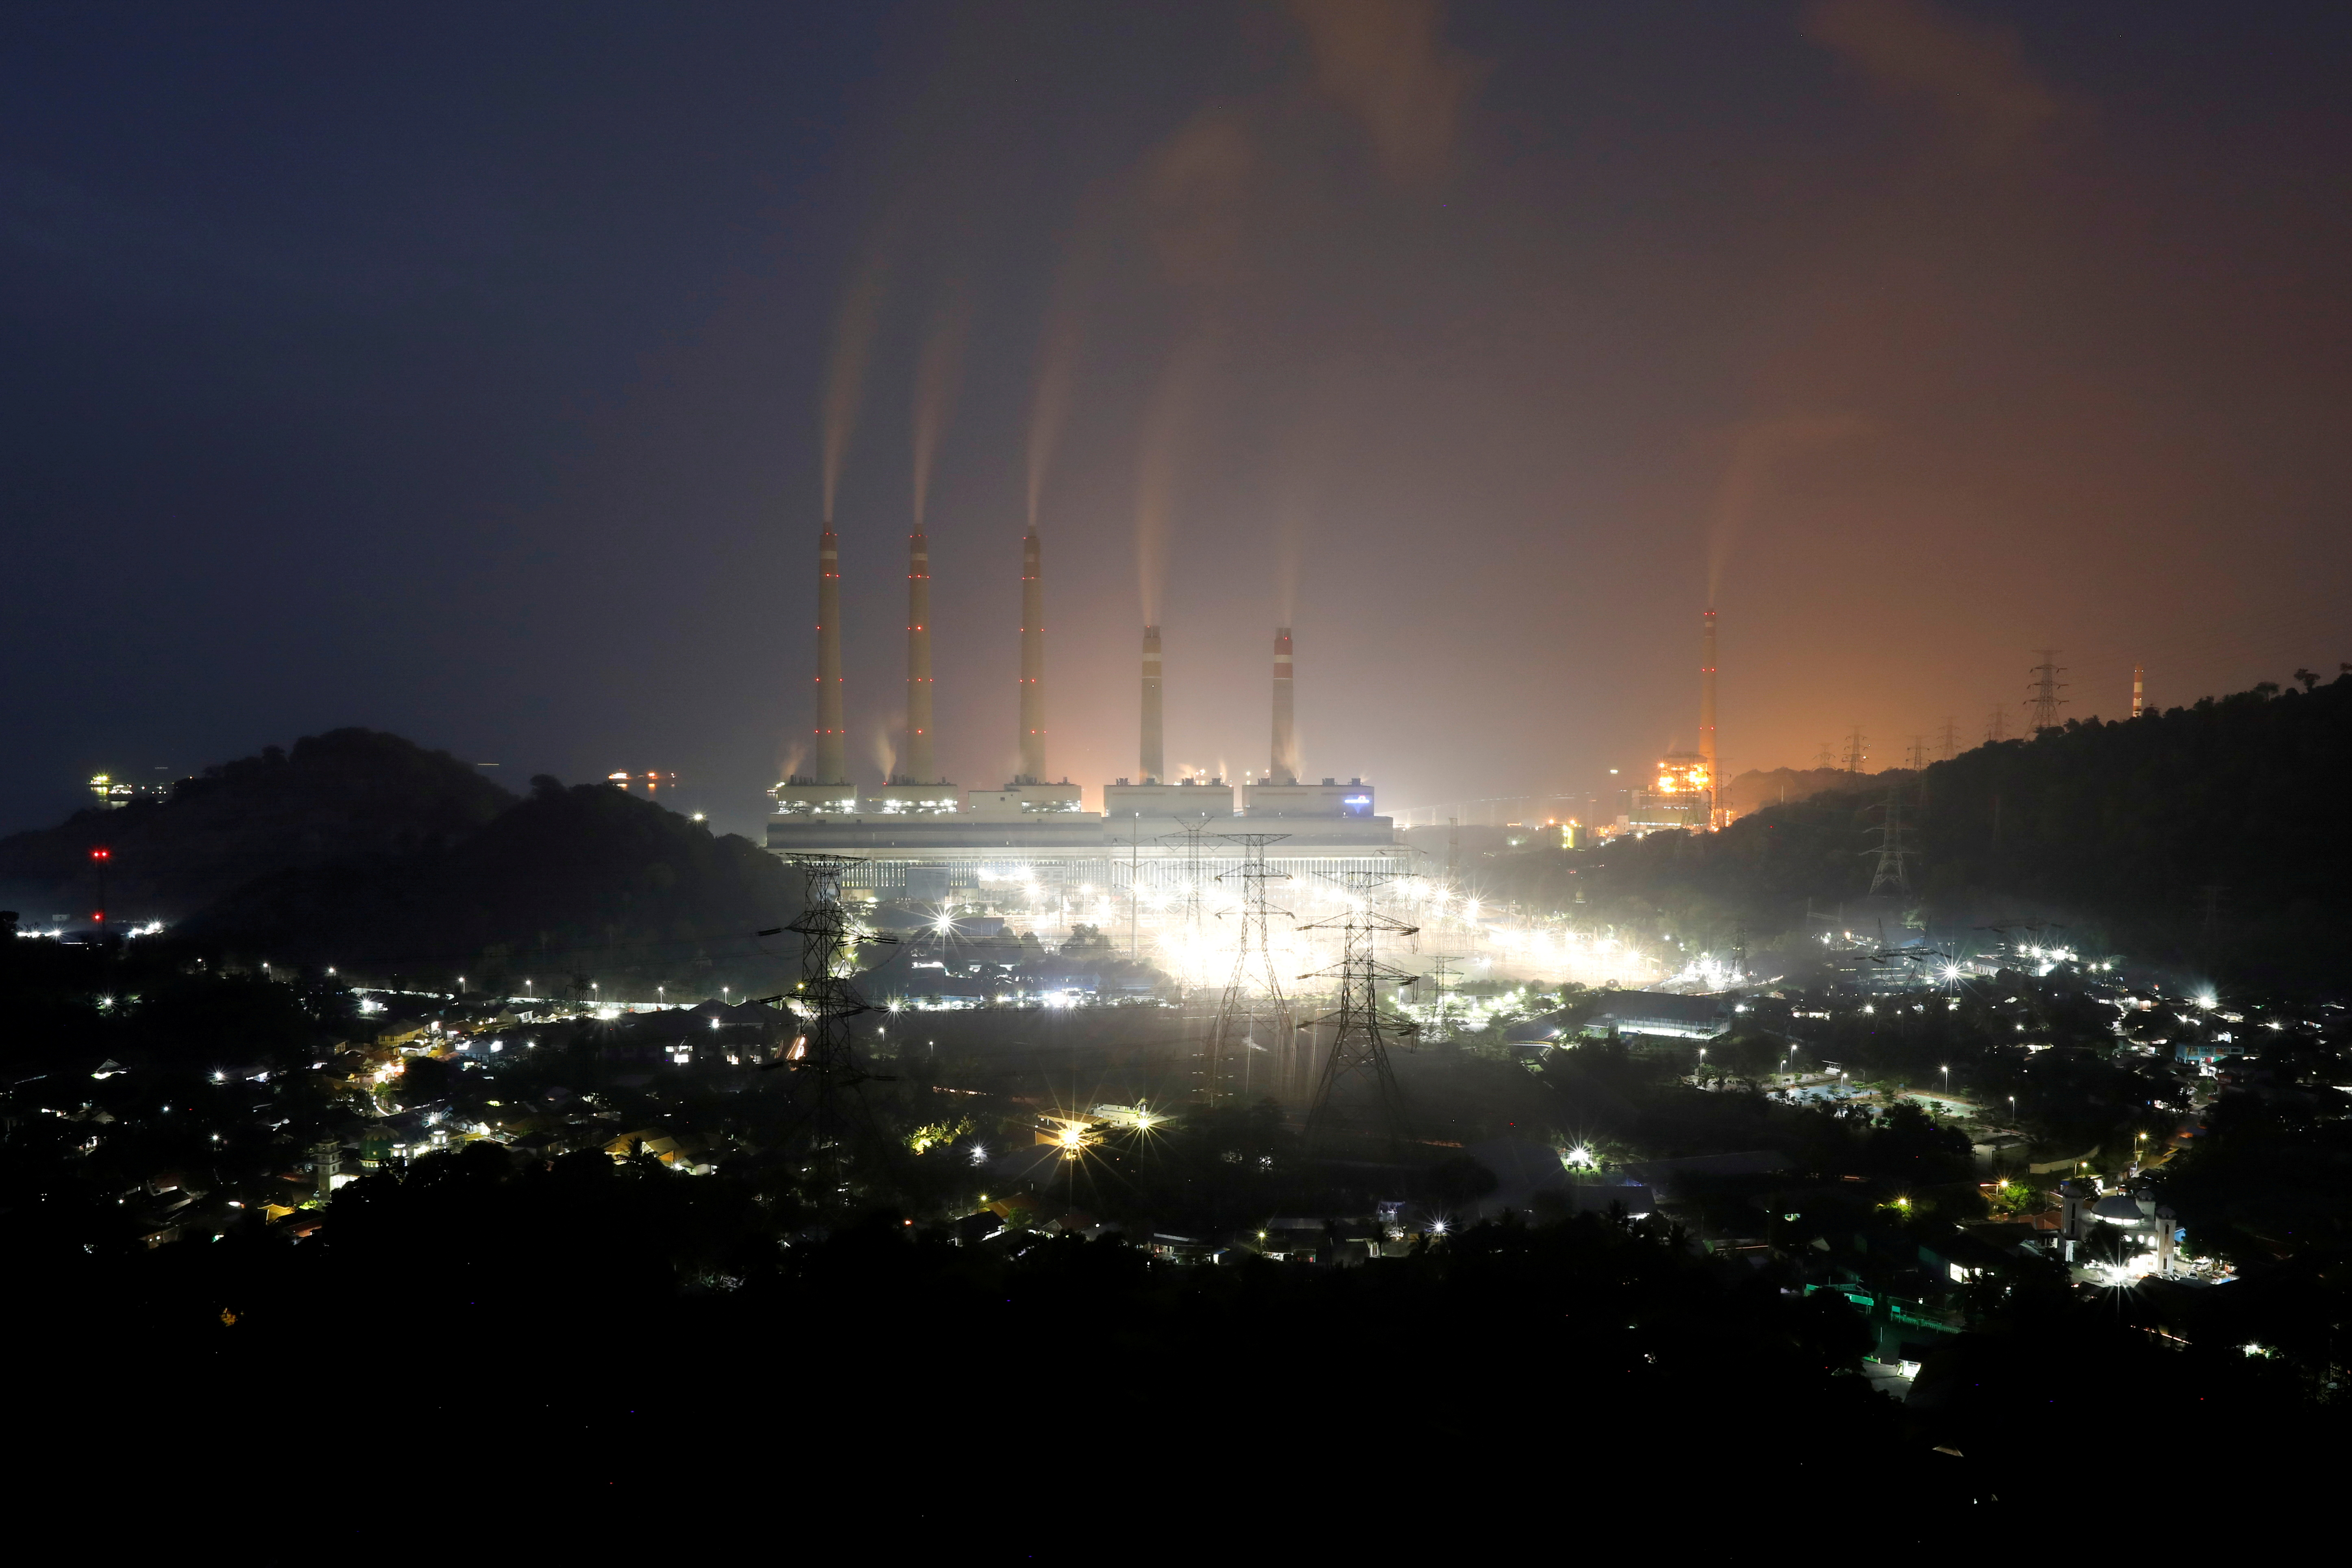 Smoke and steam billow from a coal-fired power plant owned by Indonesia Power in Suralaya, Banten province, Indonesia, July 10, 2020. REUTERS/Willy Kurniawan